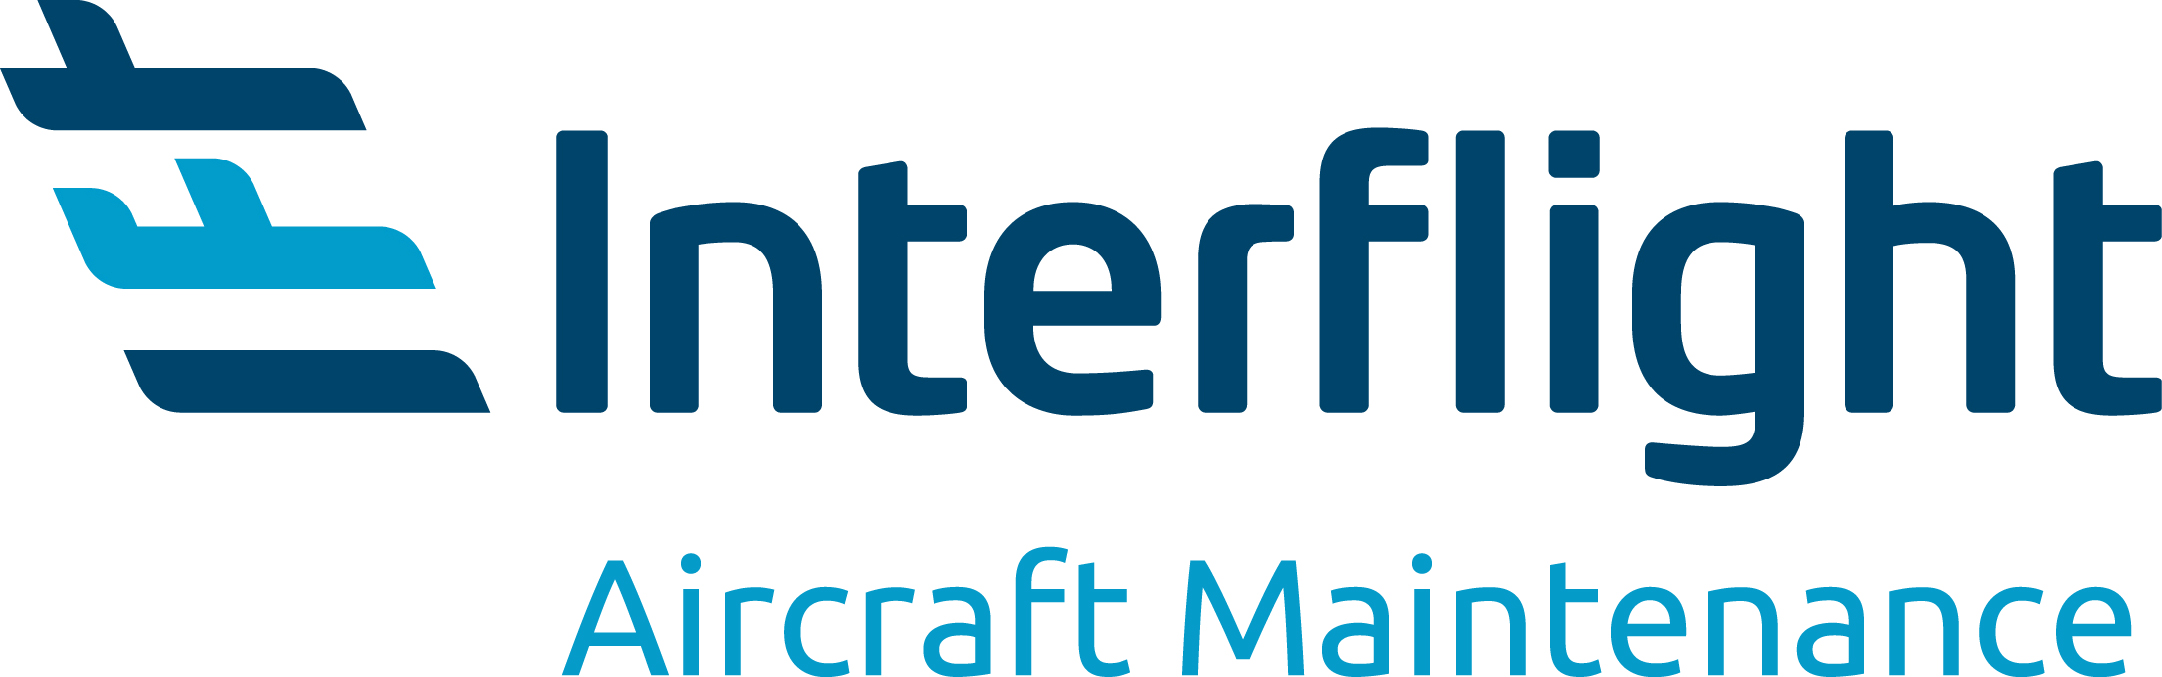 Interflight_ Aircraft Maintenance